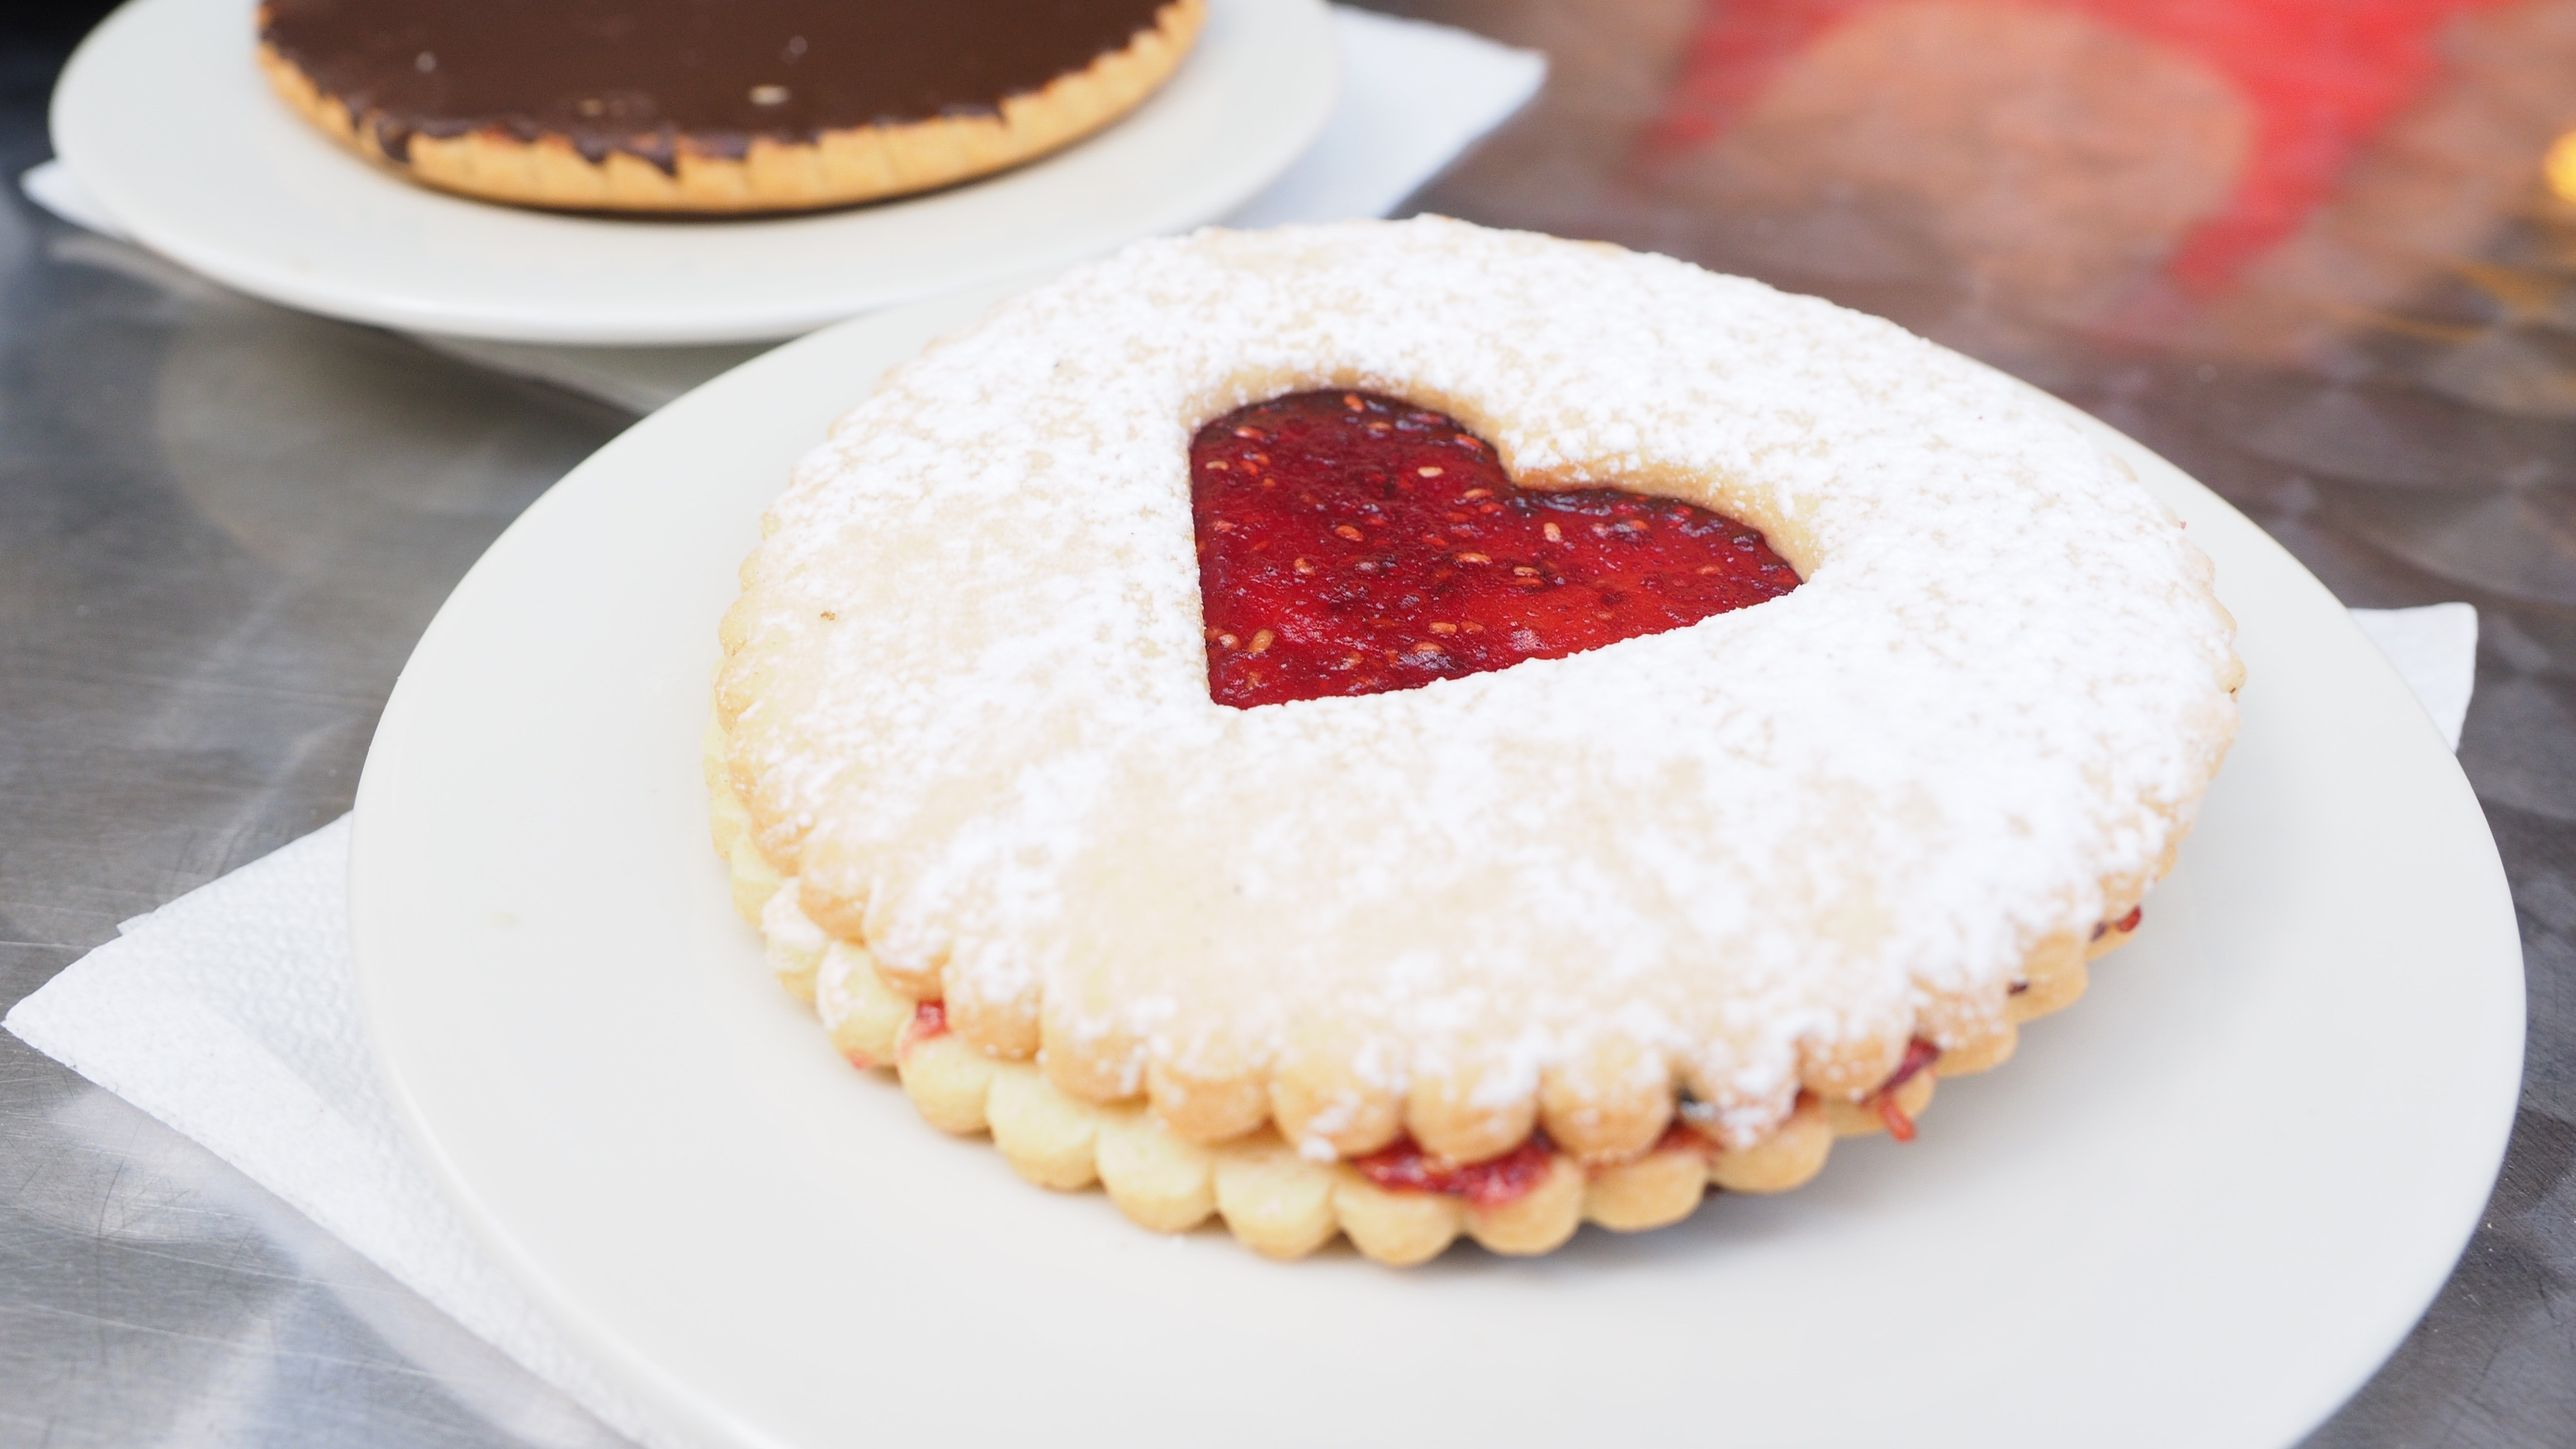 Round biscuit with heart jelly in center photo